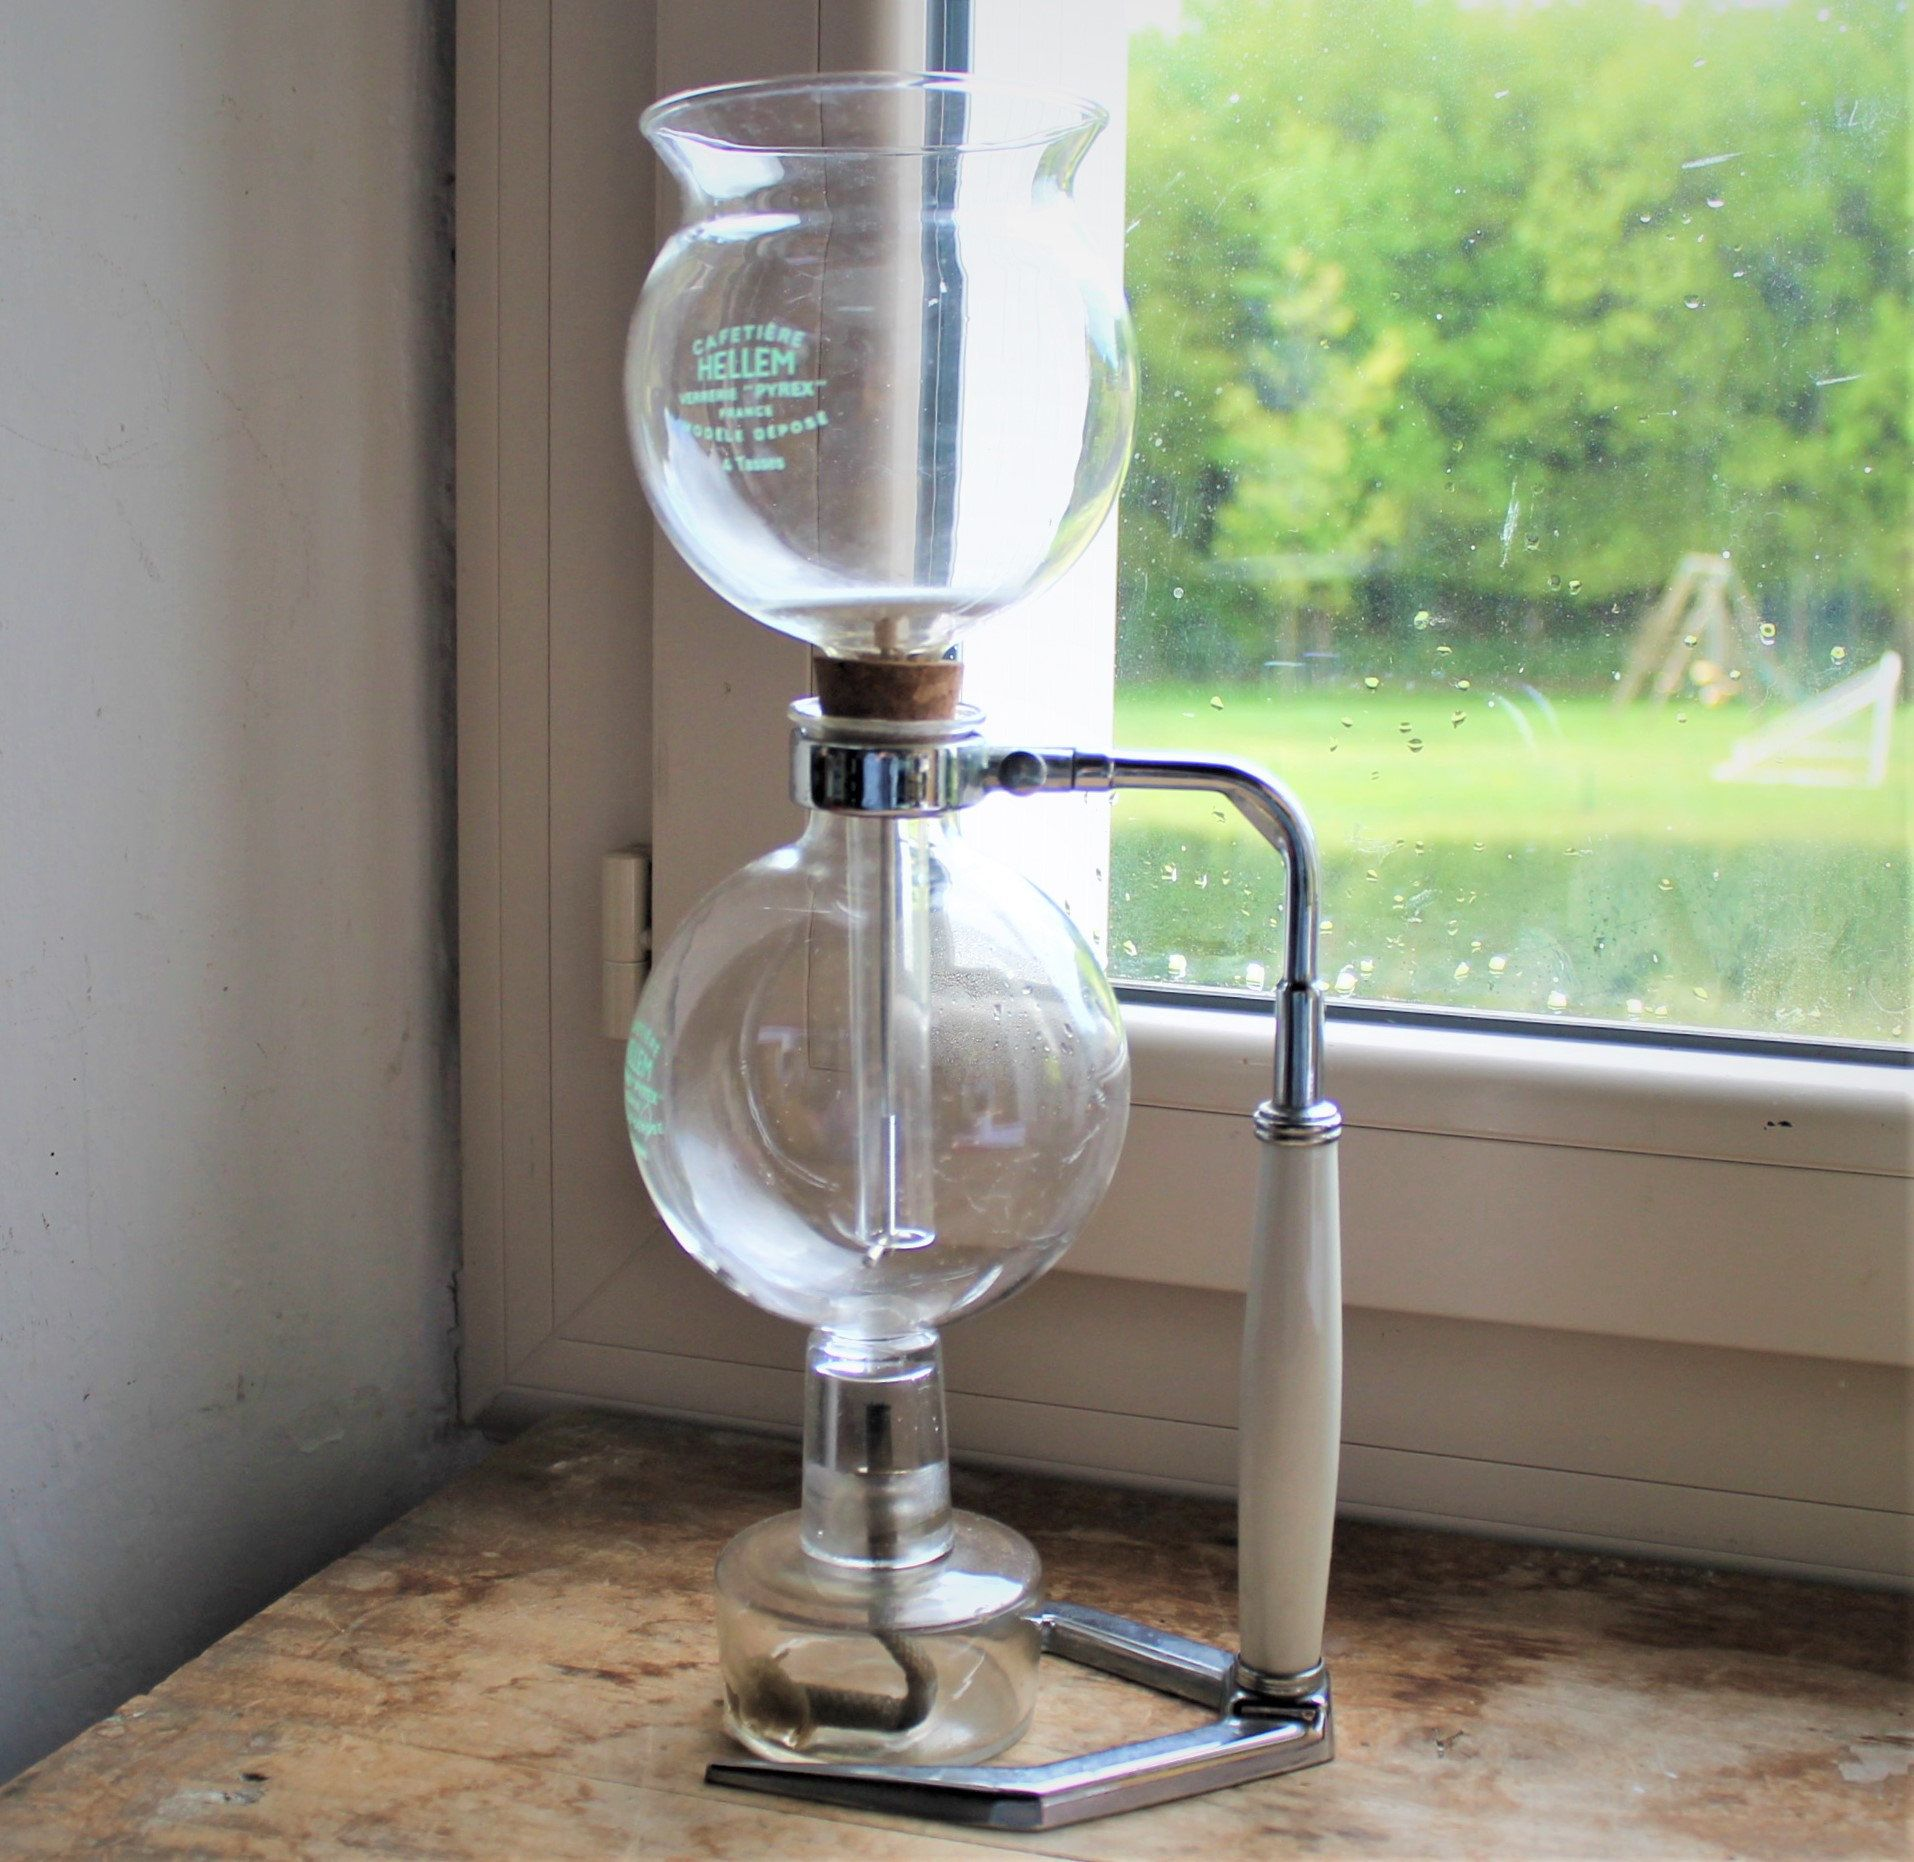 Vintage 1970 S French Cafetiere Vacuum Coffee Maker Coffee Siphon Helem Antique Glass Siphon Coffee Brewer Pyrex Vacuum Coffee Maker Vacuum Coffee Siphon Coffee